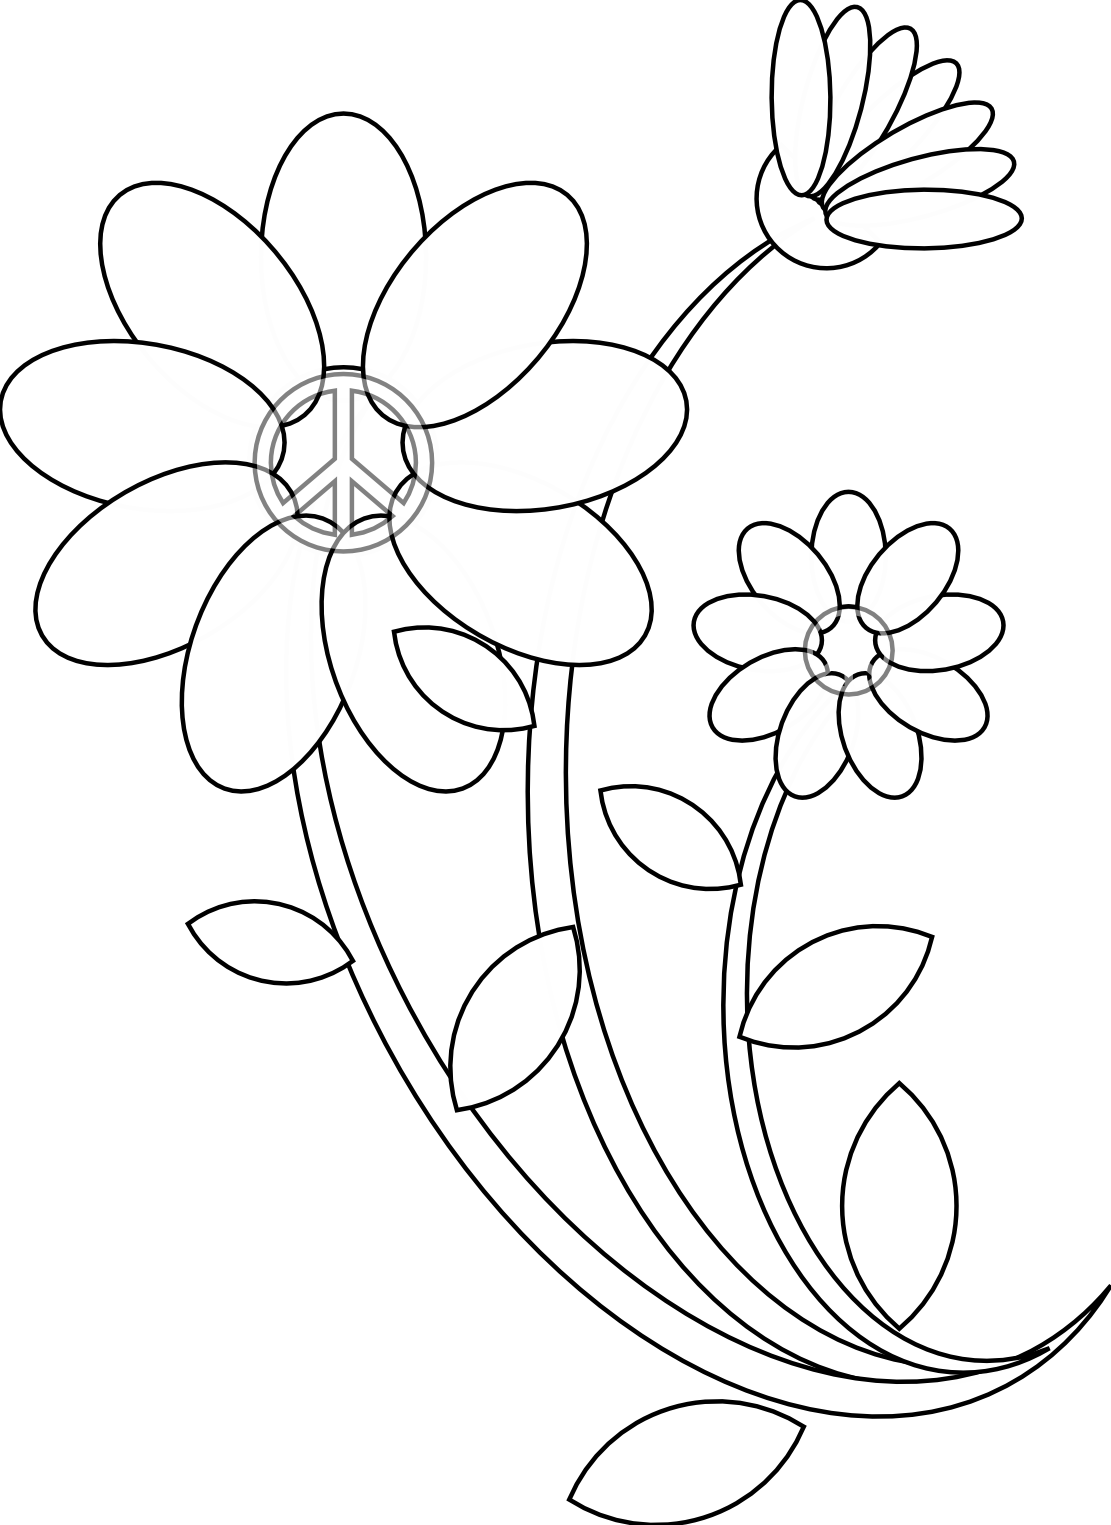 Line Drawing Of Flowers : Drawing line flowers clipart best